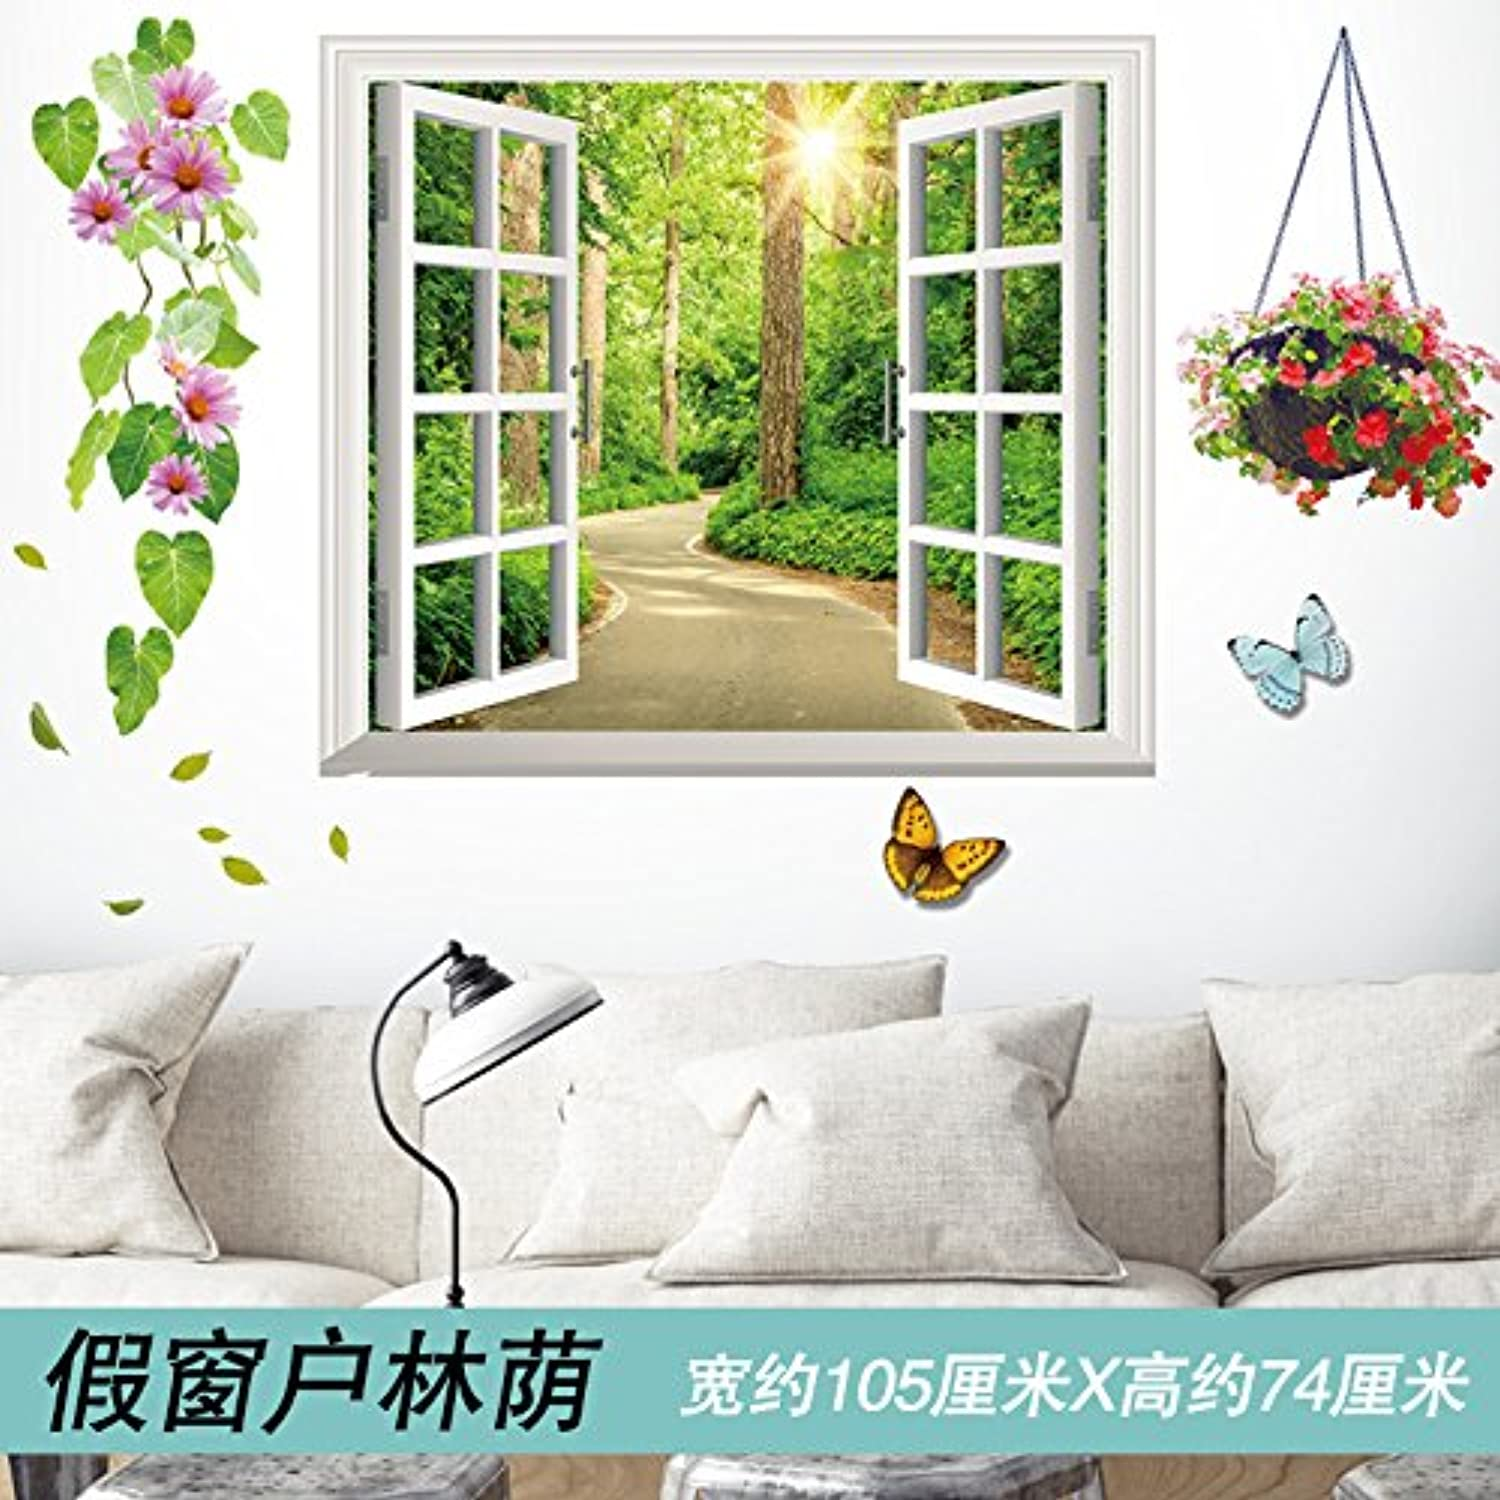 Znzbzt Creative Living Room Wall Decoration Wall Sticker Art Bedroom Wallpaper self Adhesive, Window View